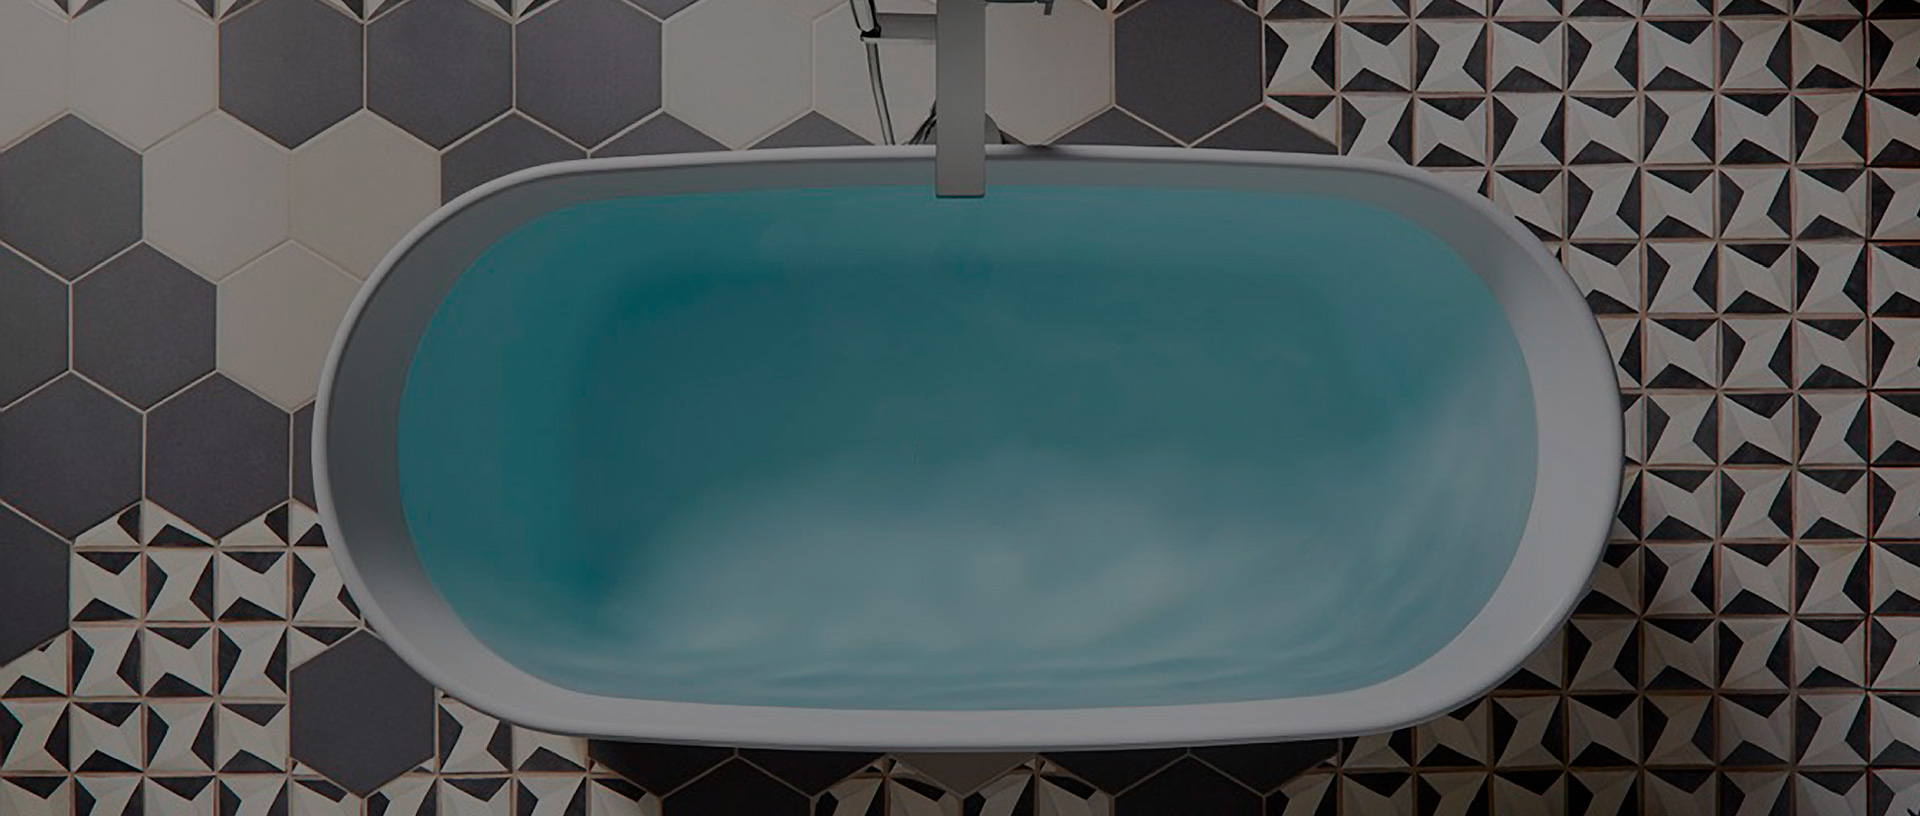 top down view of tub filled with water on top of white and gray patterned tile